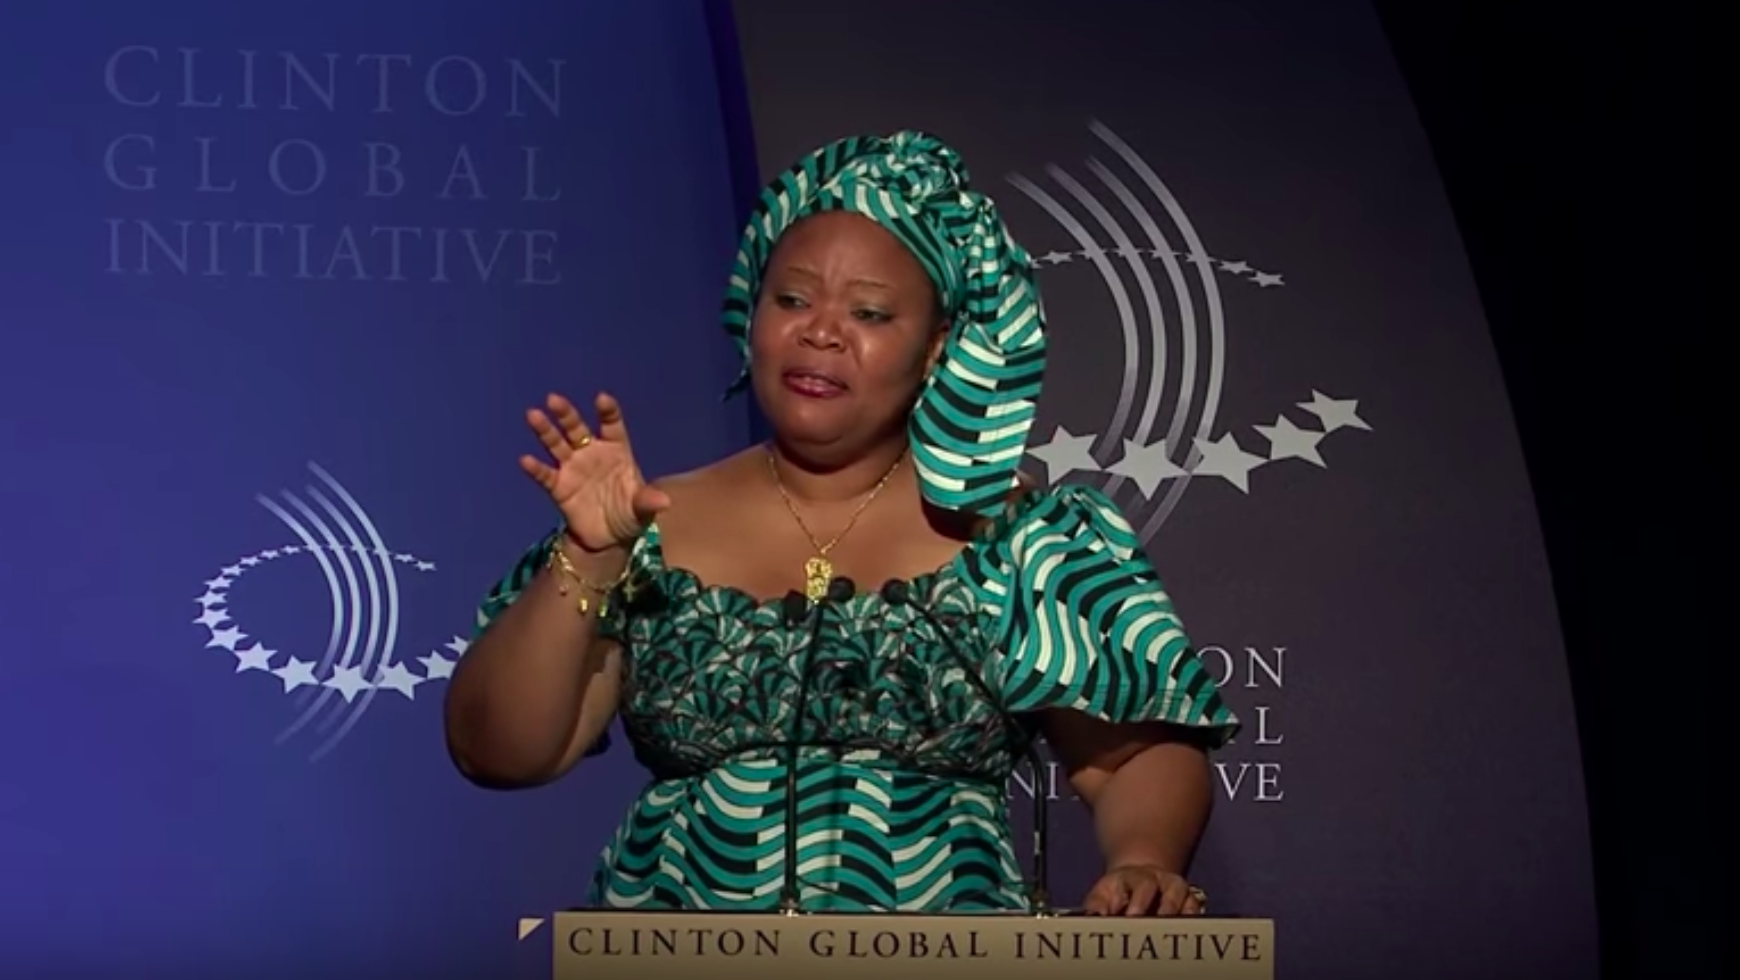 Leymah Gbowee: If Changes Were To Be Made It Had To Be Done By The Mothers